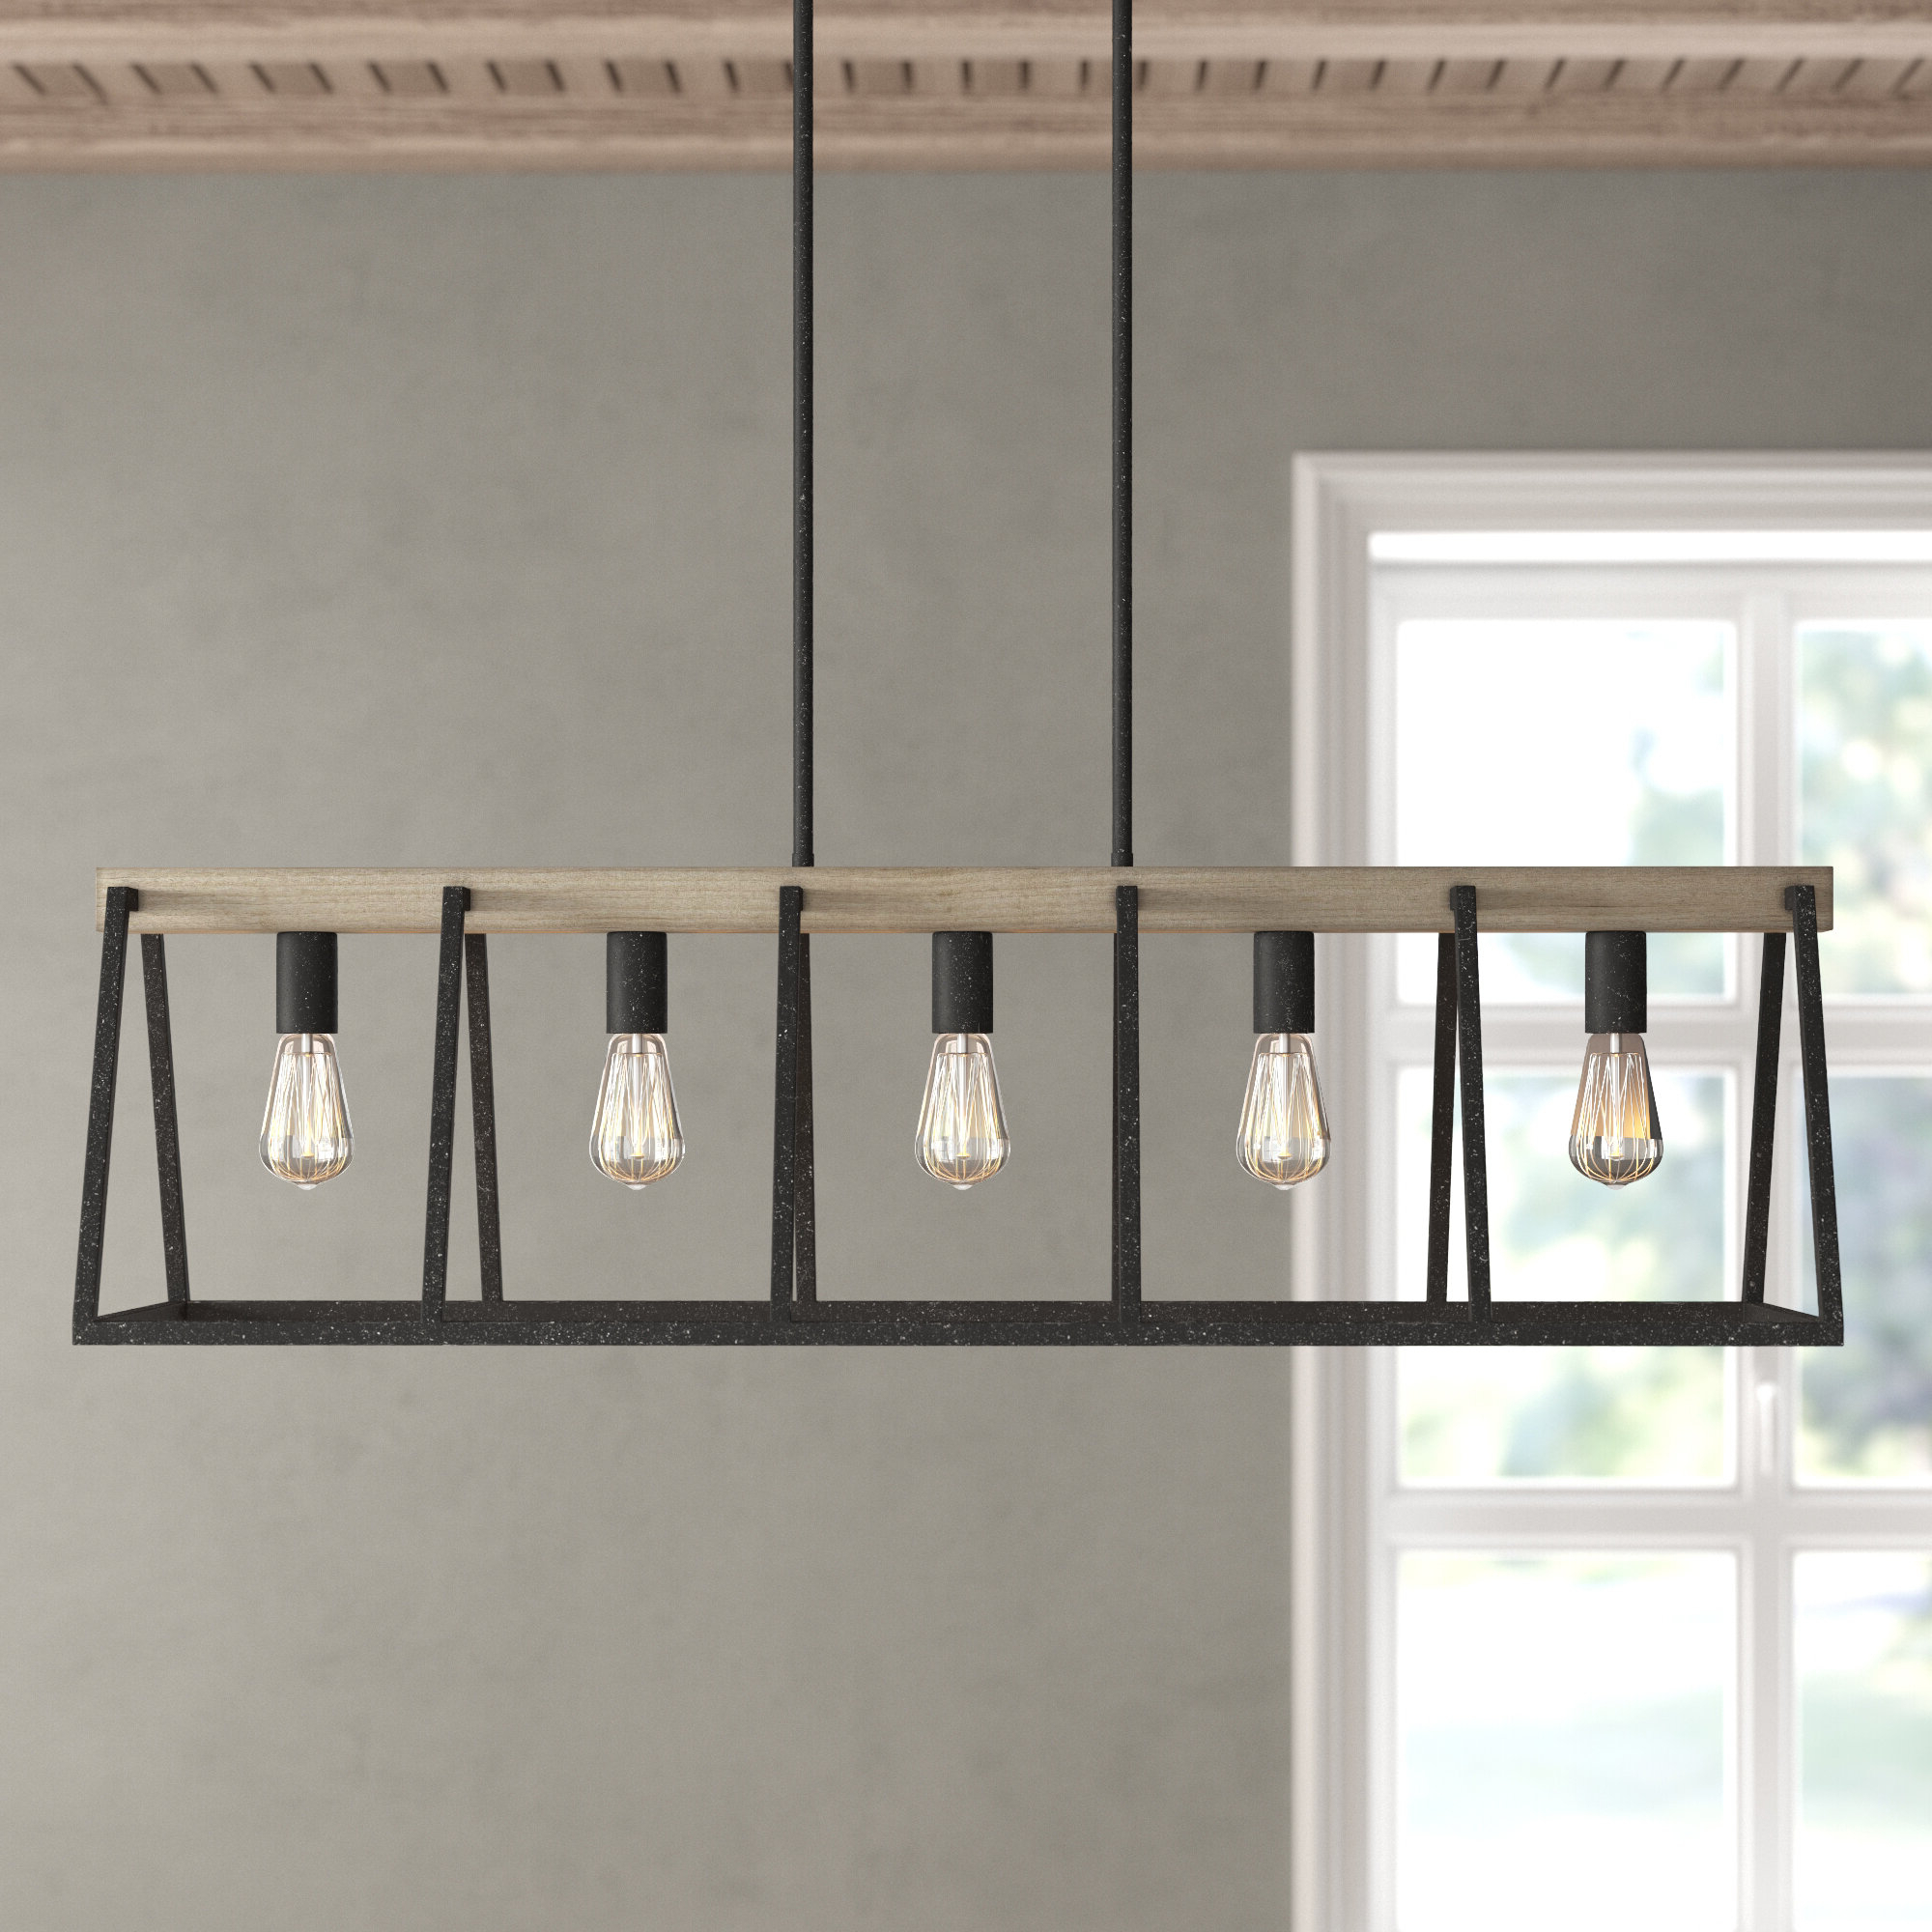 Dillman 5 Light Kitchen Island Linear Pendant In Most Recently Released Freemont 5 Light Kitchen Island Linear Chandeliers (Gallery 16 of 20)